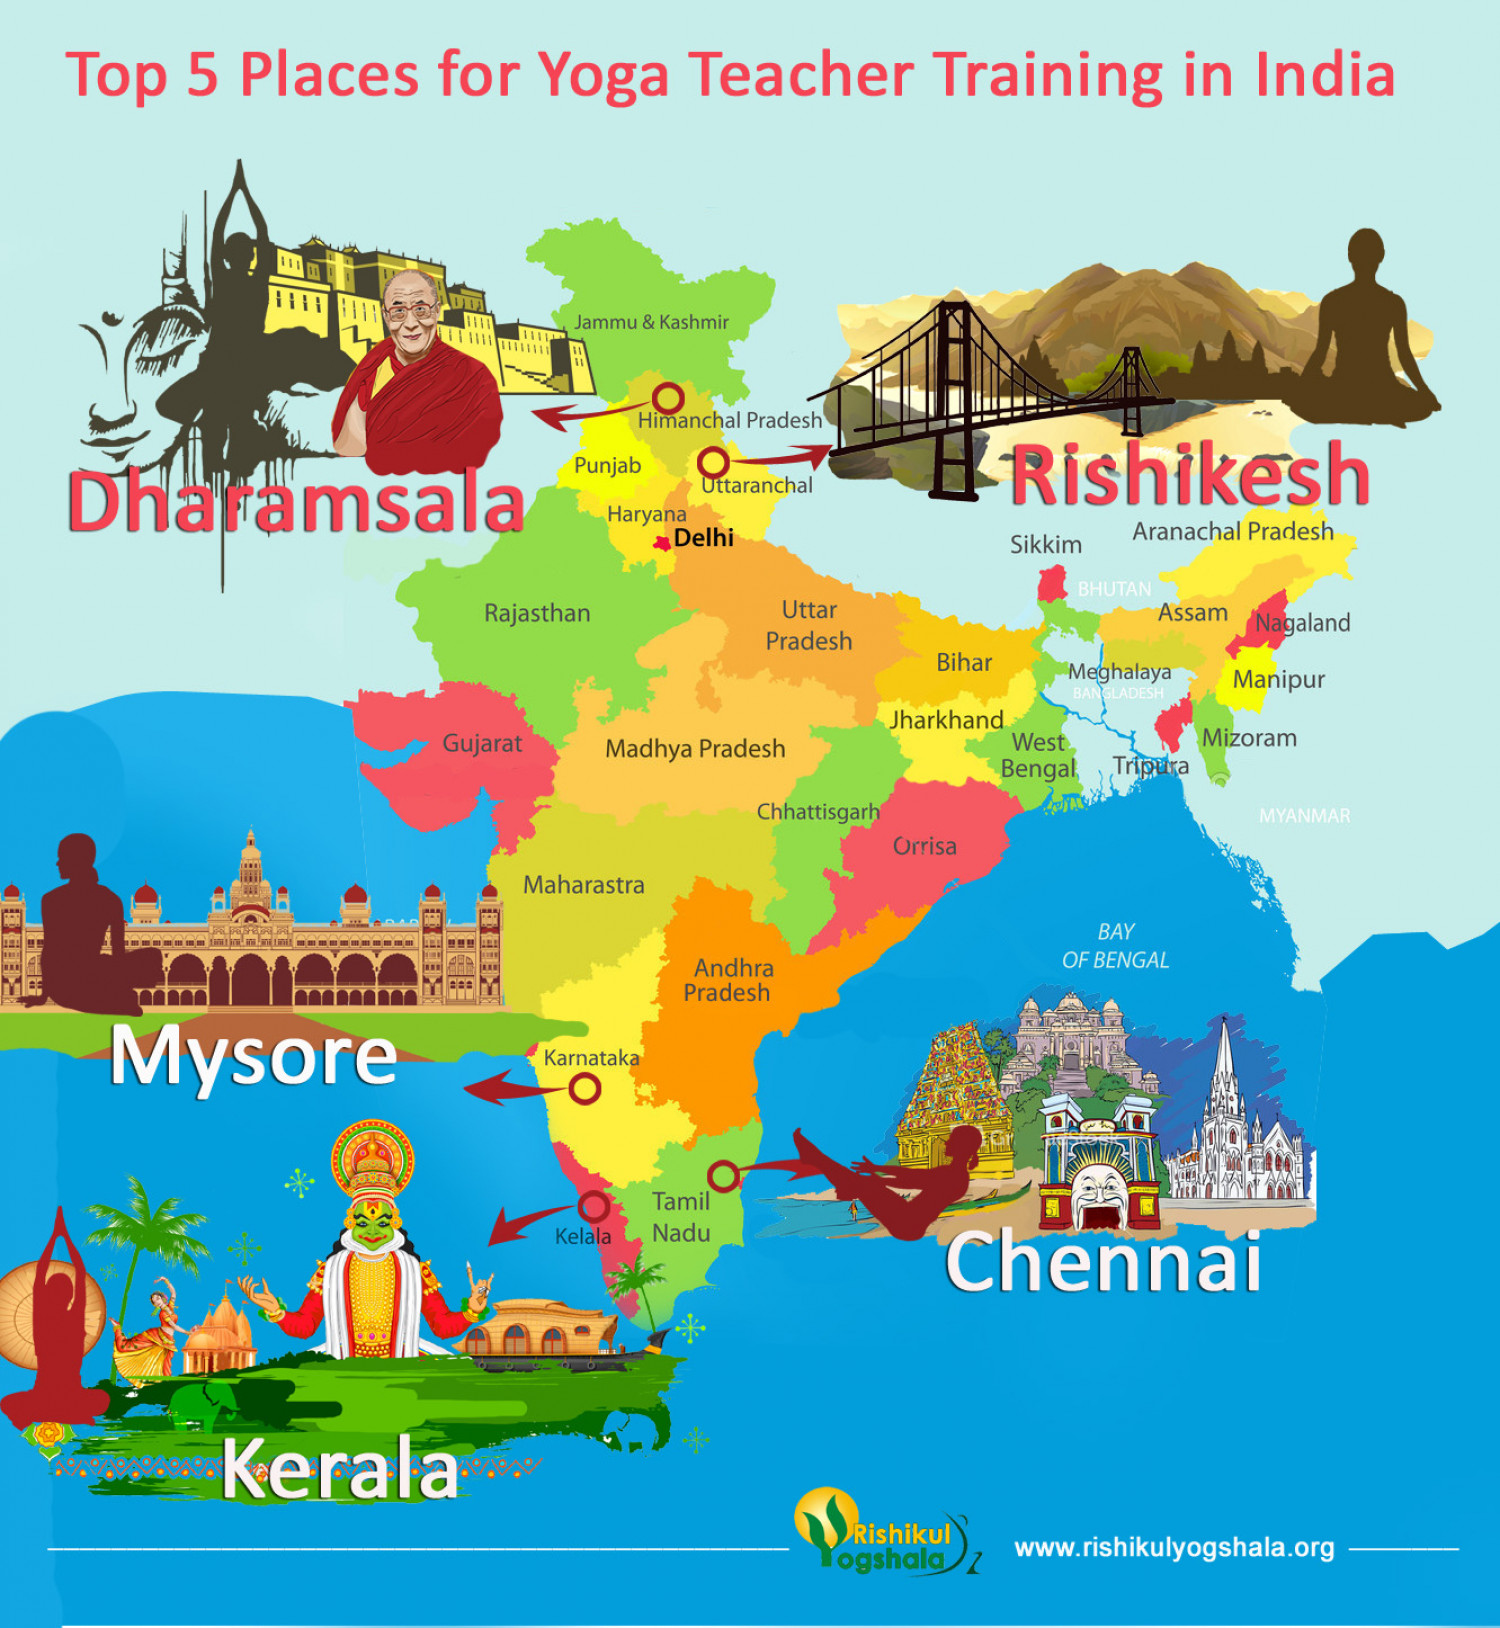 Top 5 places for Yoga Training in India Infographic